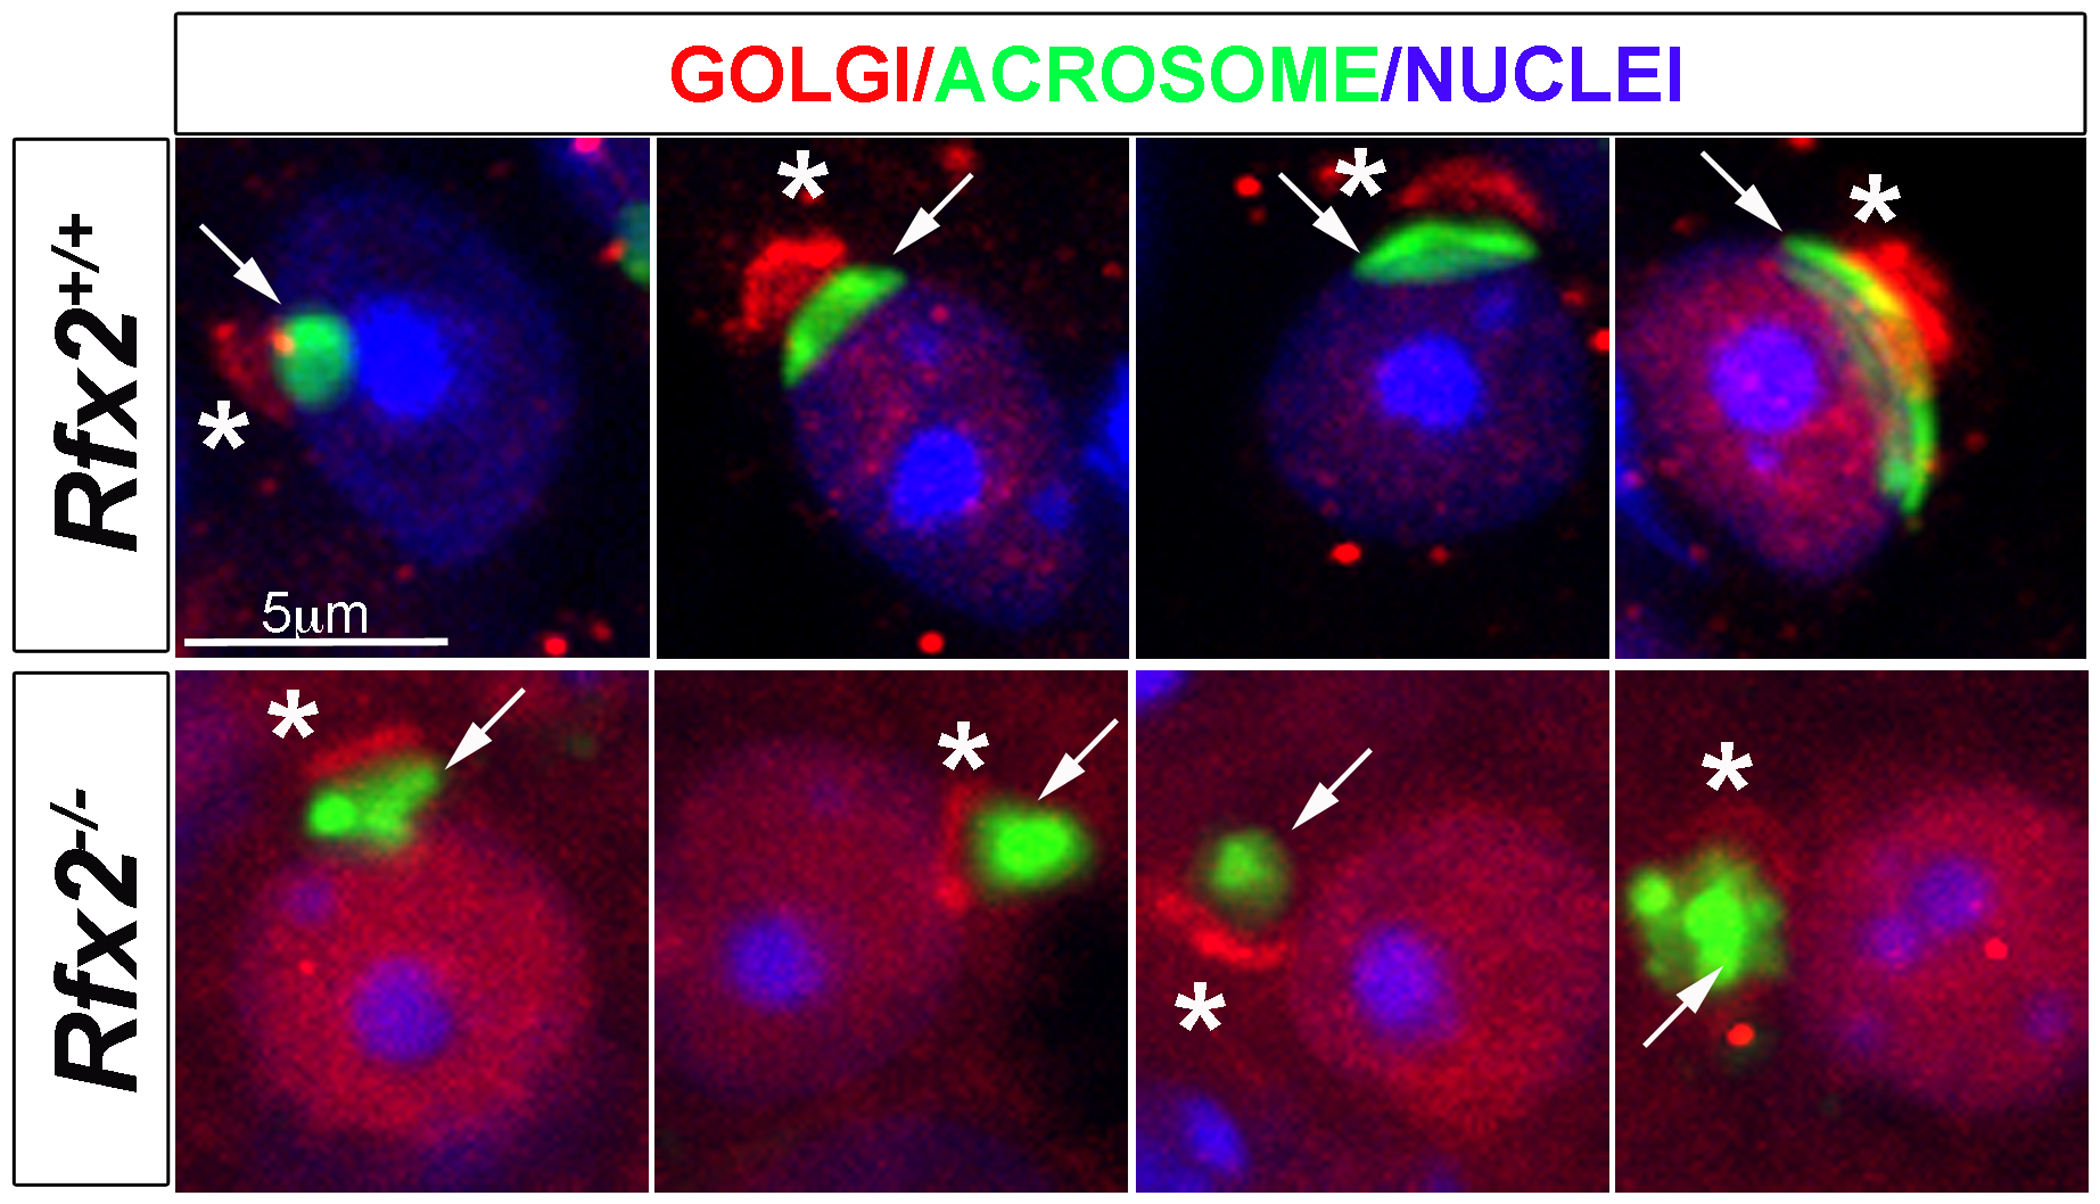 Testis sections from P30 <i>Rfx2</i><sup>+/+</sup> or <i>Rfx2</i><sup><i>-/-</i></sup> mice stained for the cis-Golgi compartment (GM130 antibody, red), the acrosome (peanut agglutinin, green) or nuclei (Dapi, blue).